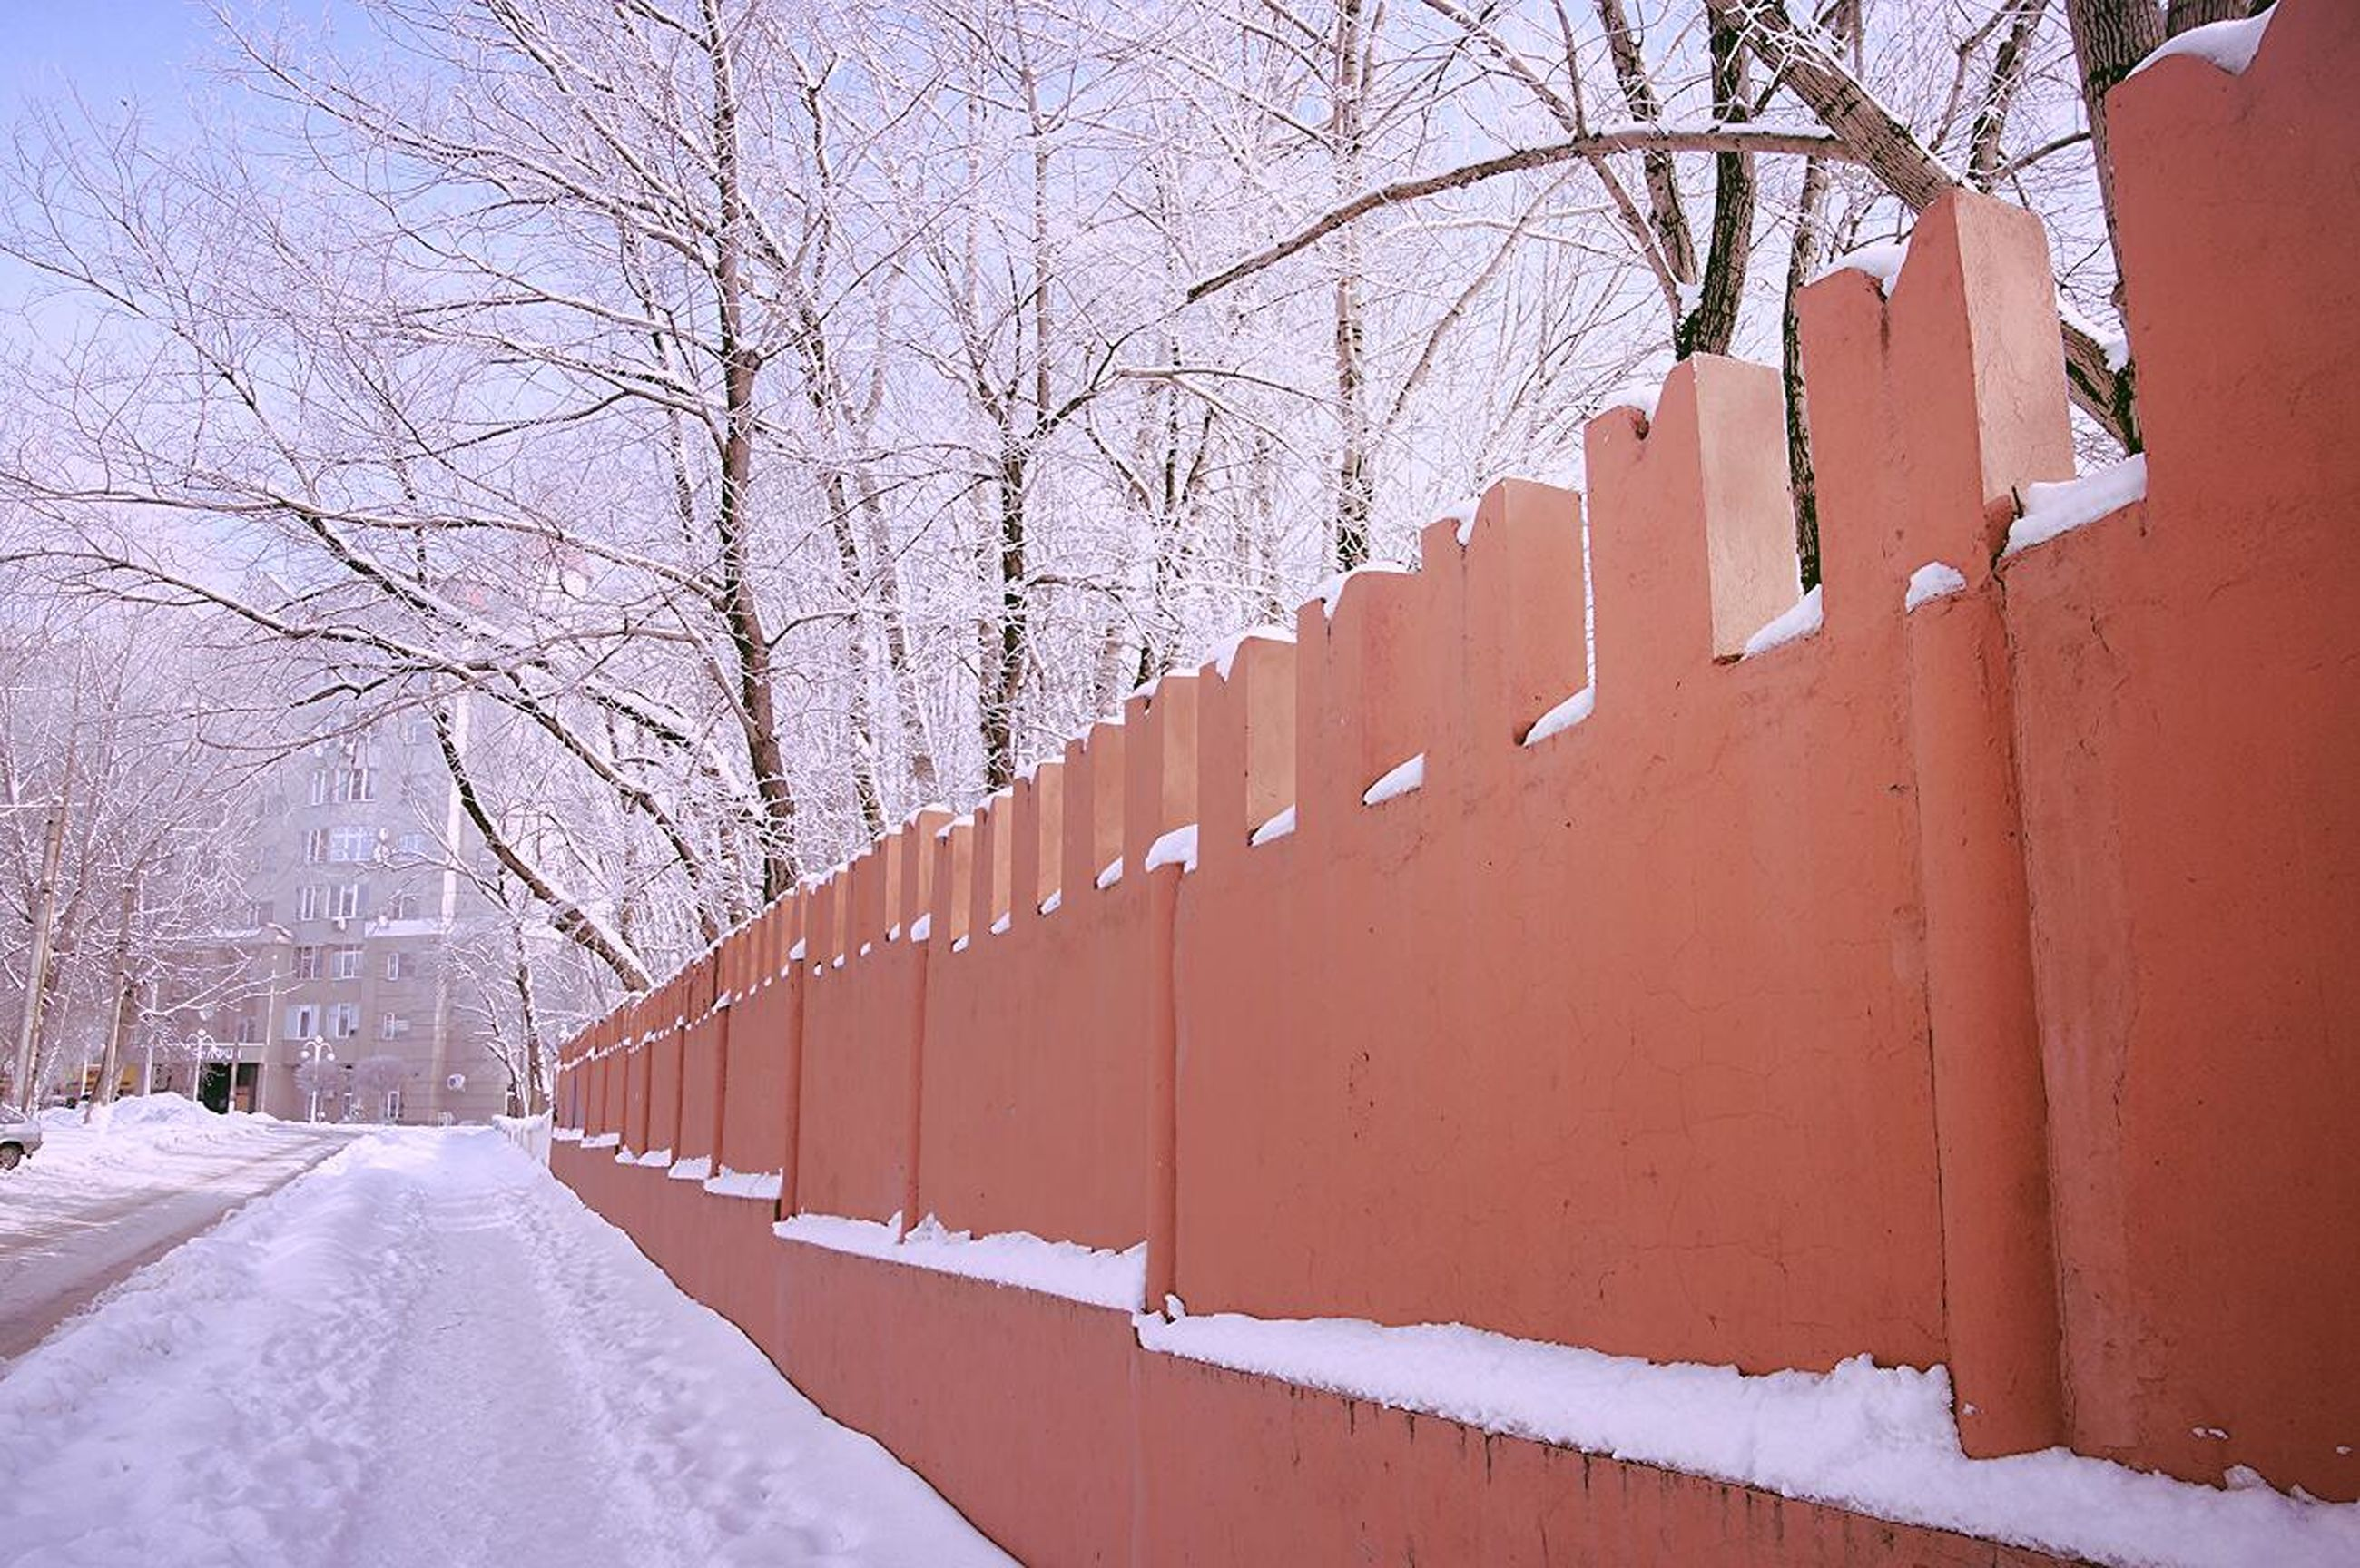 tree, snow, cold temperature, no people, outdoors, picket fence, day, military